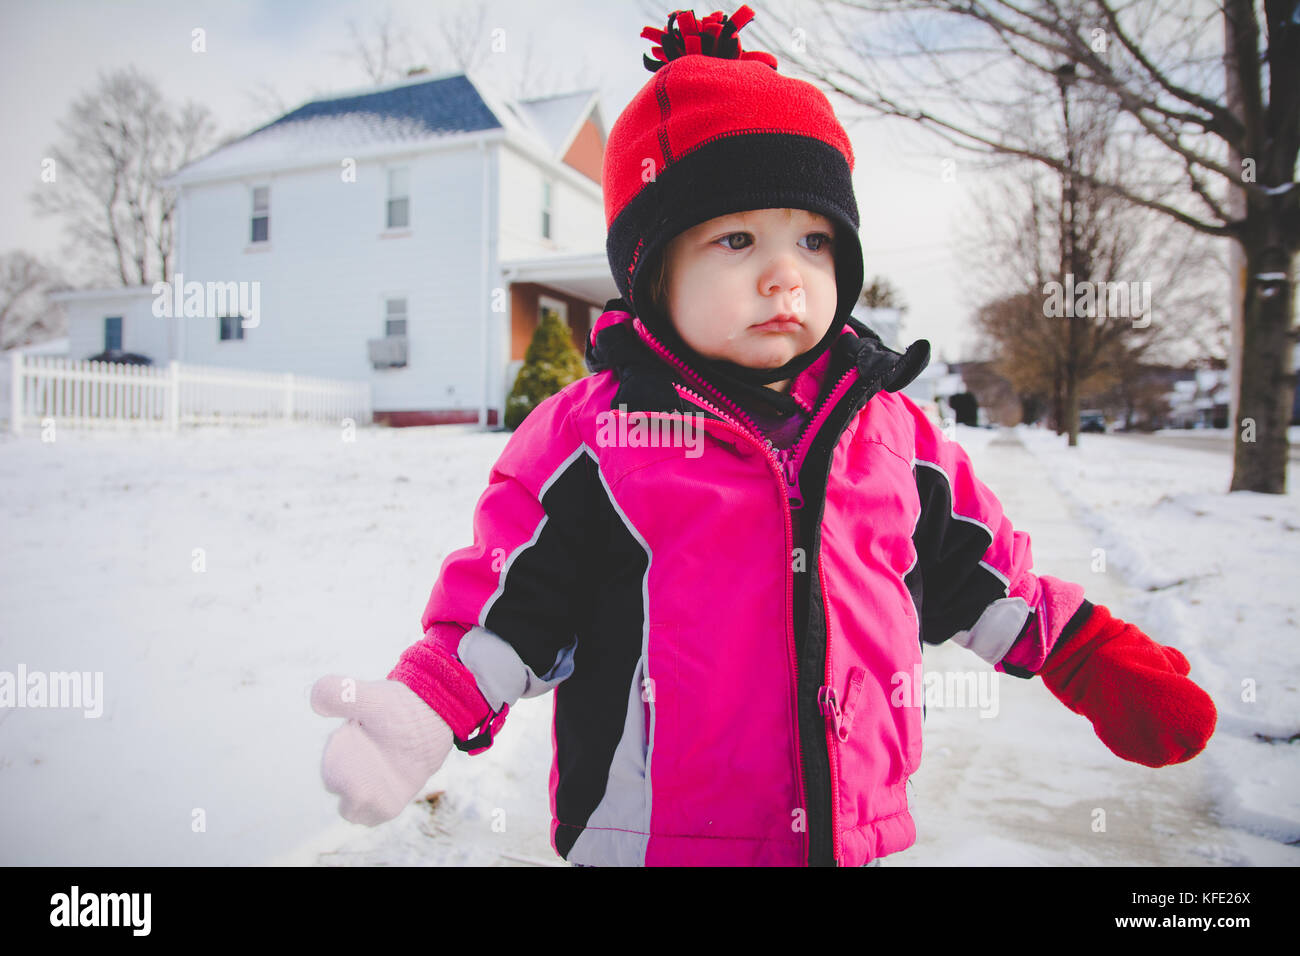 Infant standing in snow wearing winter clothes - Stock Image